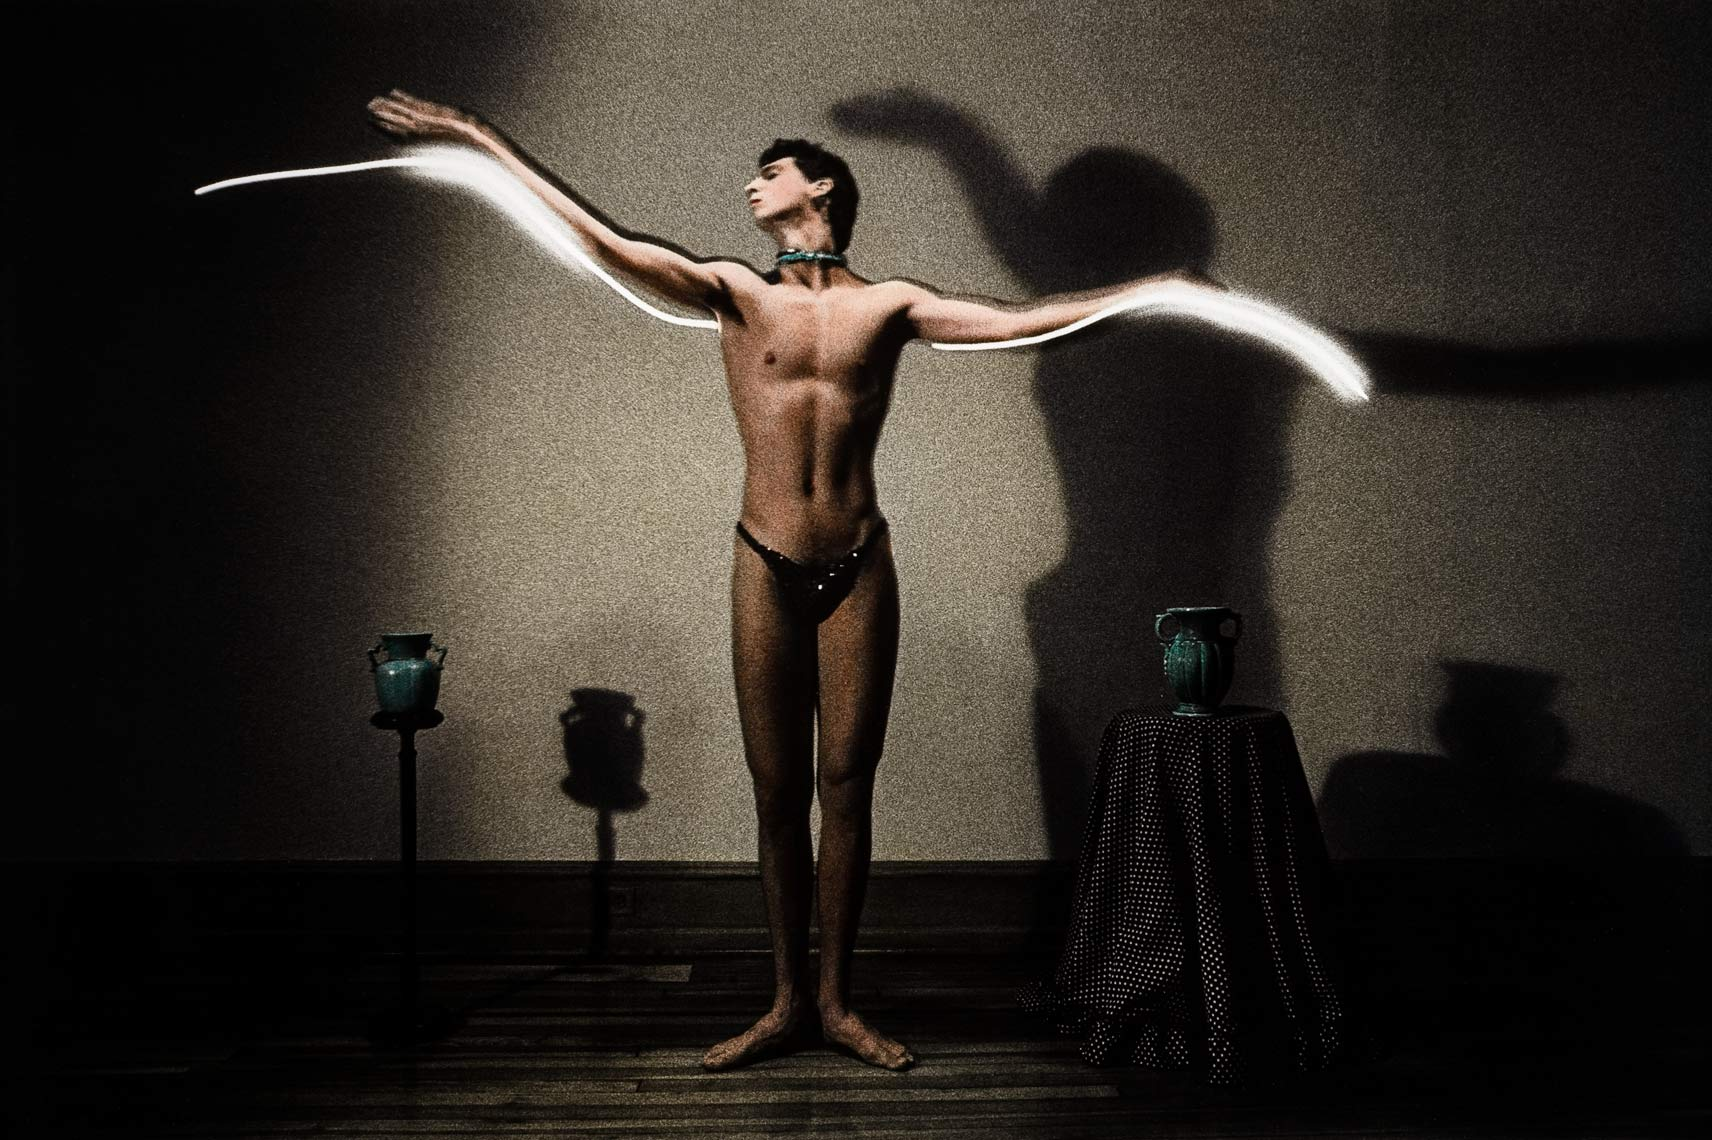 David Lebe; Flight, 1983, male nude, light drawing, hand colored photograph